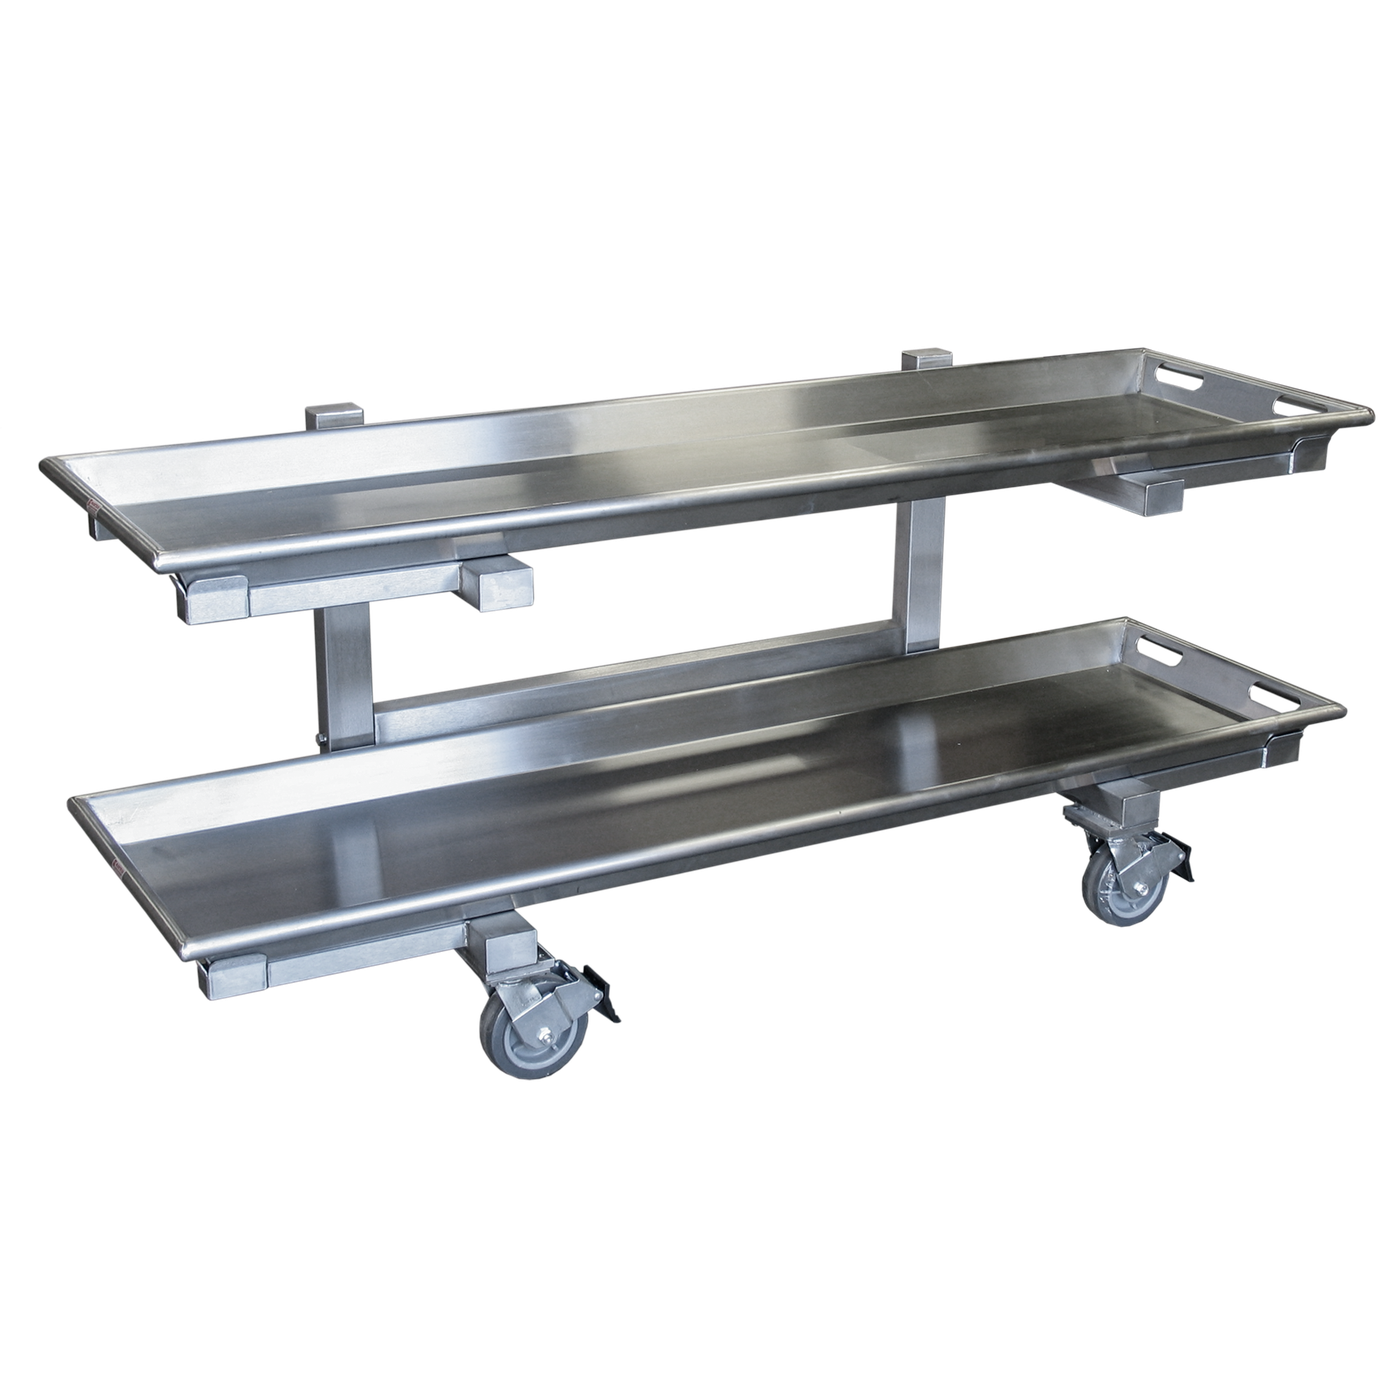 Two Tier Storage Carrier (7020-26)-Cadaver Handling & Storage Systems-Mortech Manufacturing Company Inc. Quality Stainless Steel Autopsy, Morgue, Funeral Home, Necropsy, Veterinary / Anatomy, Dissection Equipment and Accessories